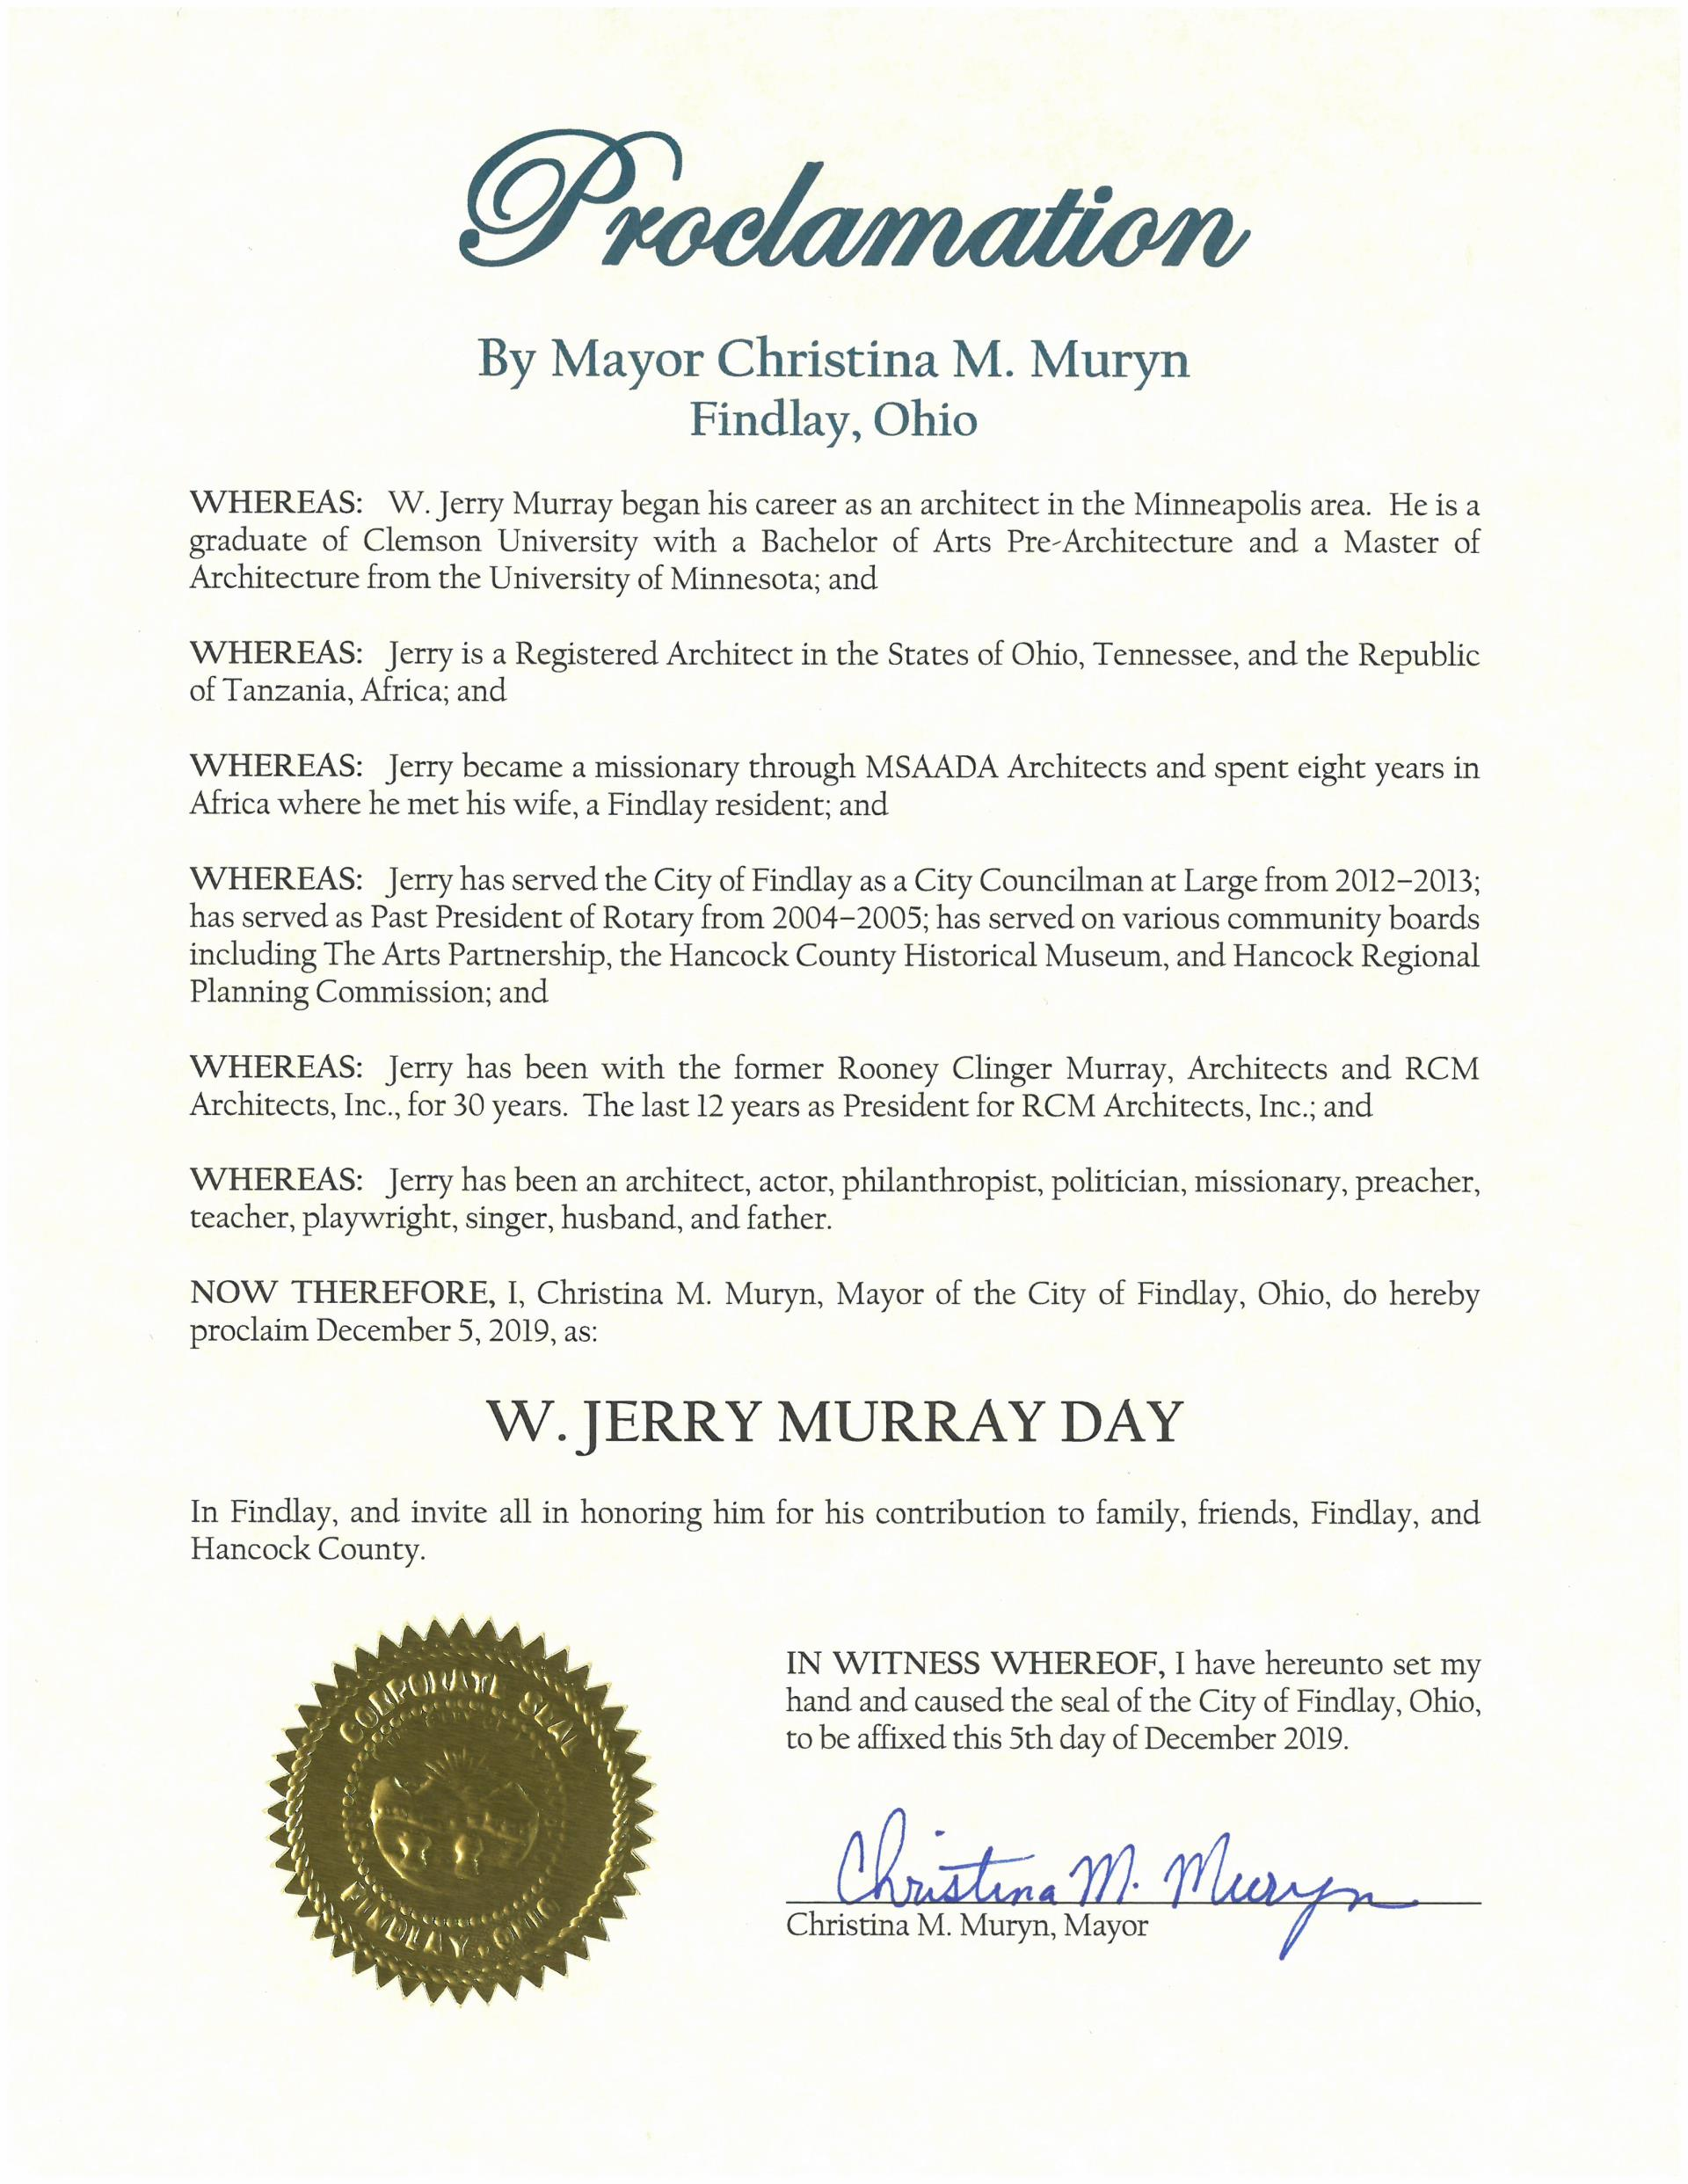 2019.12.05.W. Jerry Murray Day